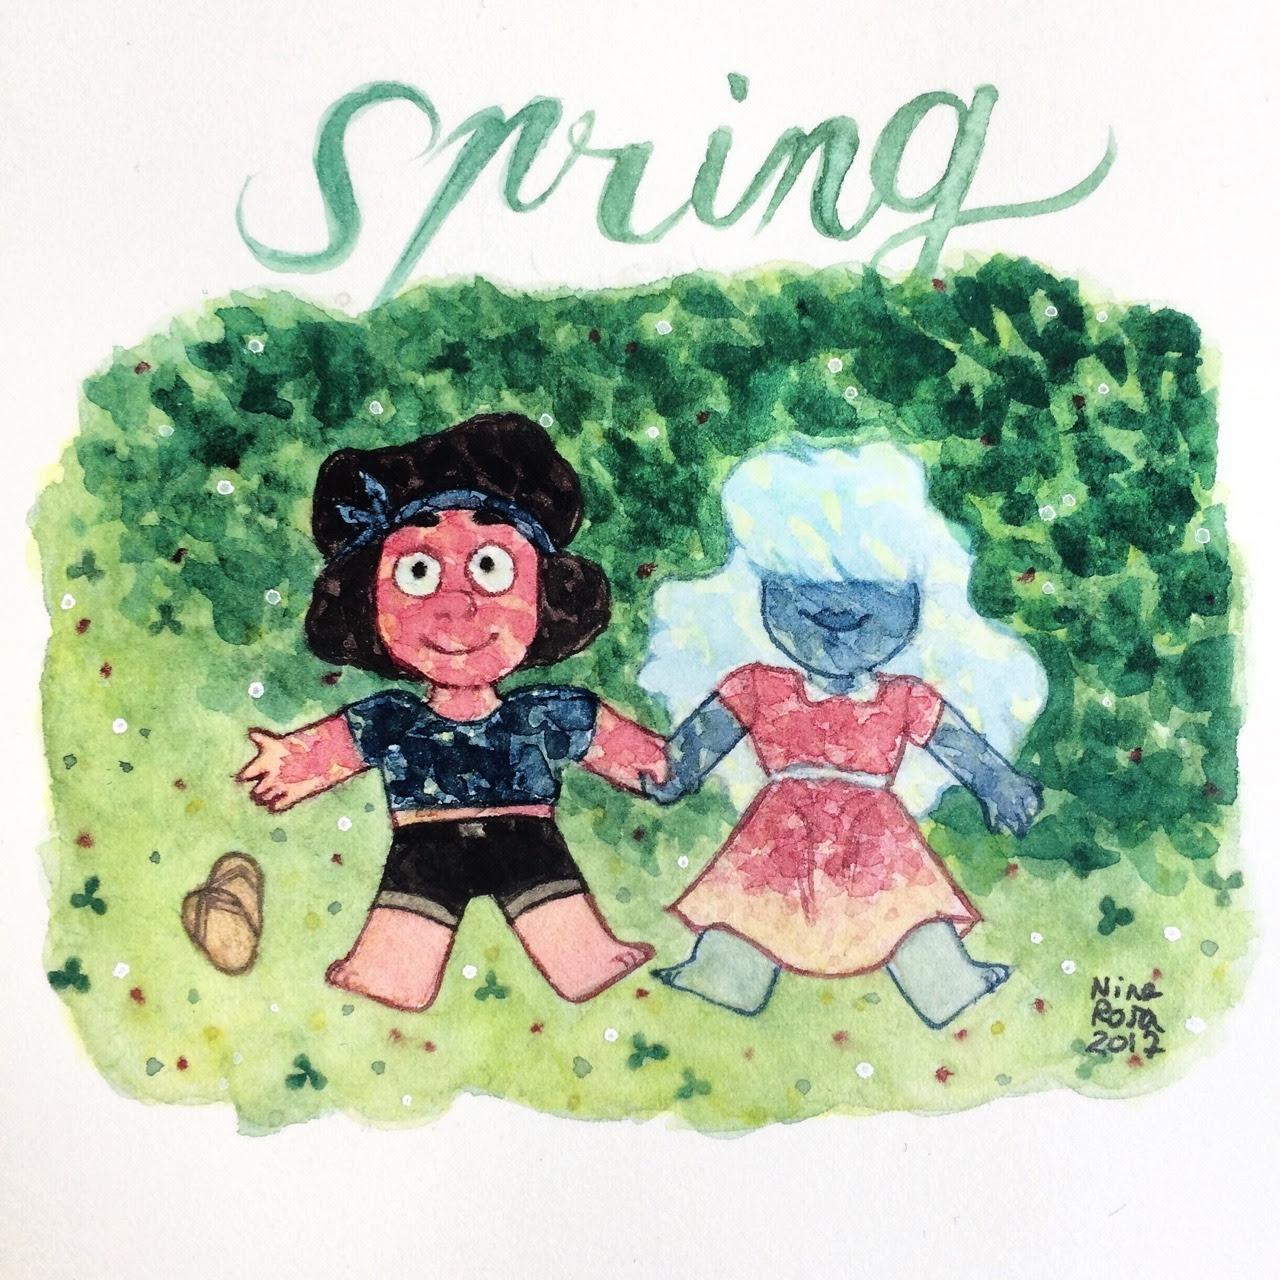 HAAA I LOVE SPRING BECAUSE THERE ARE FLOWERS AND IT'S SWEET AND SOFT AND THERE'S MY B-DAY AND IT'S BEAUTIFUL AND I LOVE IT (I know we can't see it very well, but they're under a tree ,,,, sorry I'm...